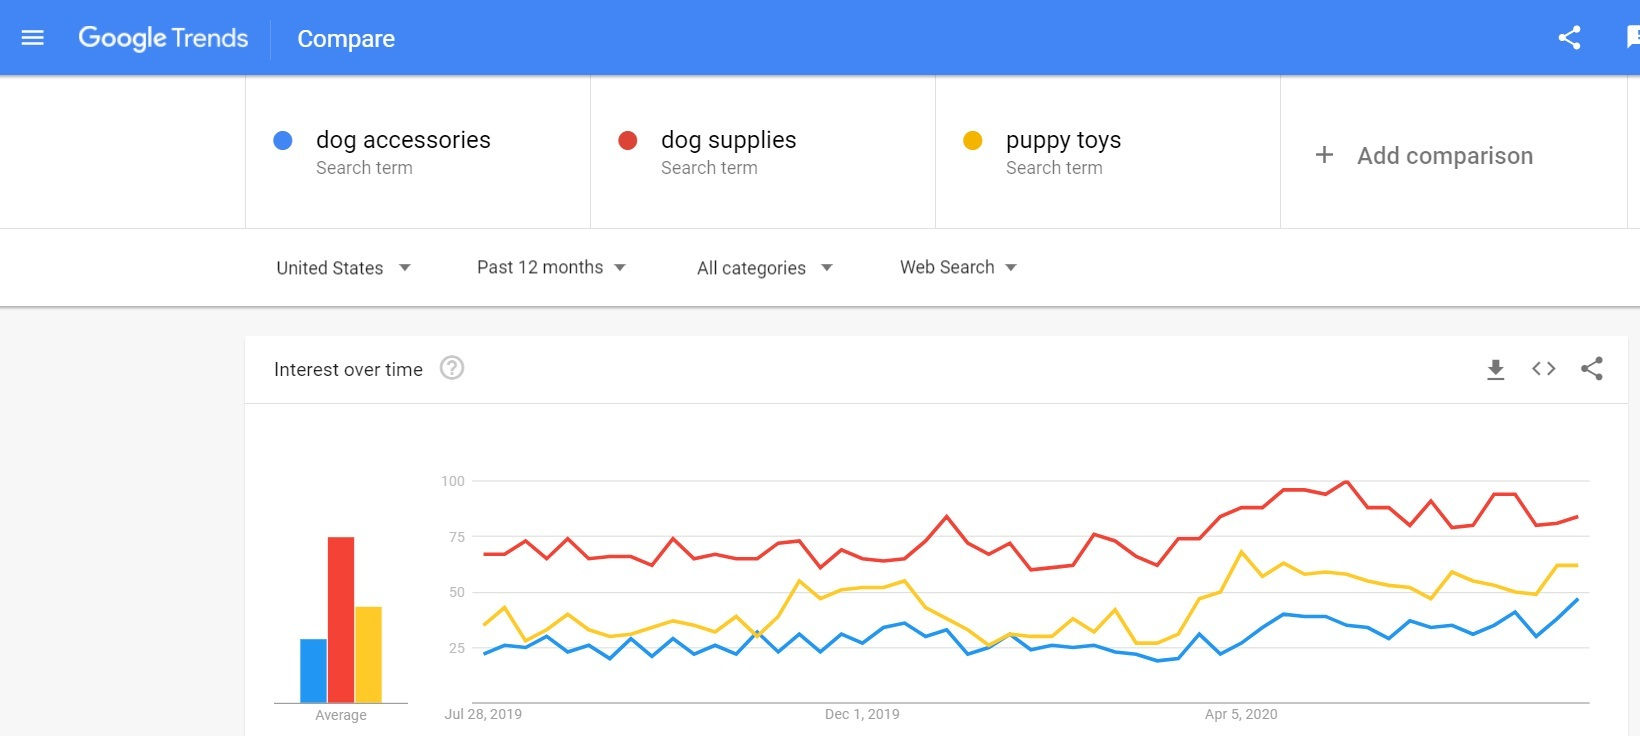 Dog Accessories - Google Trends